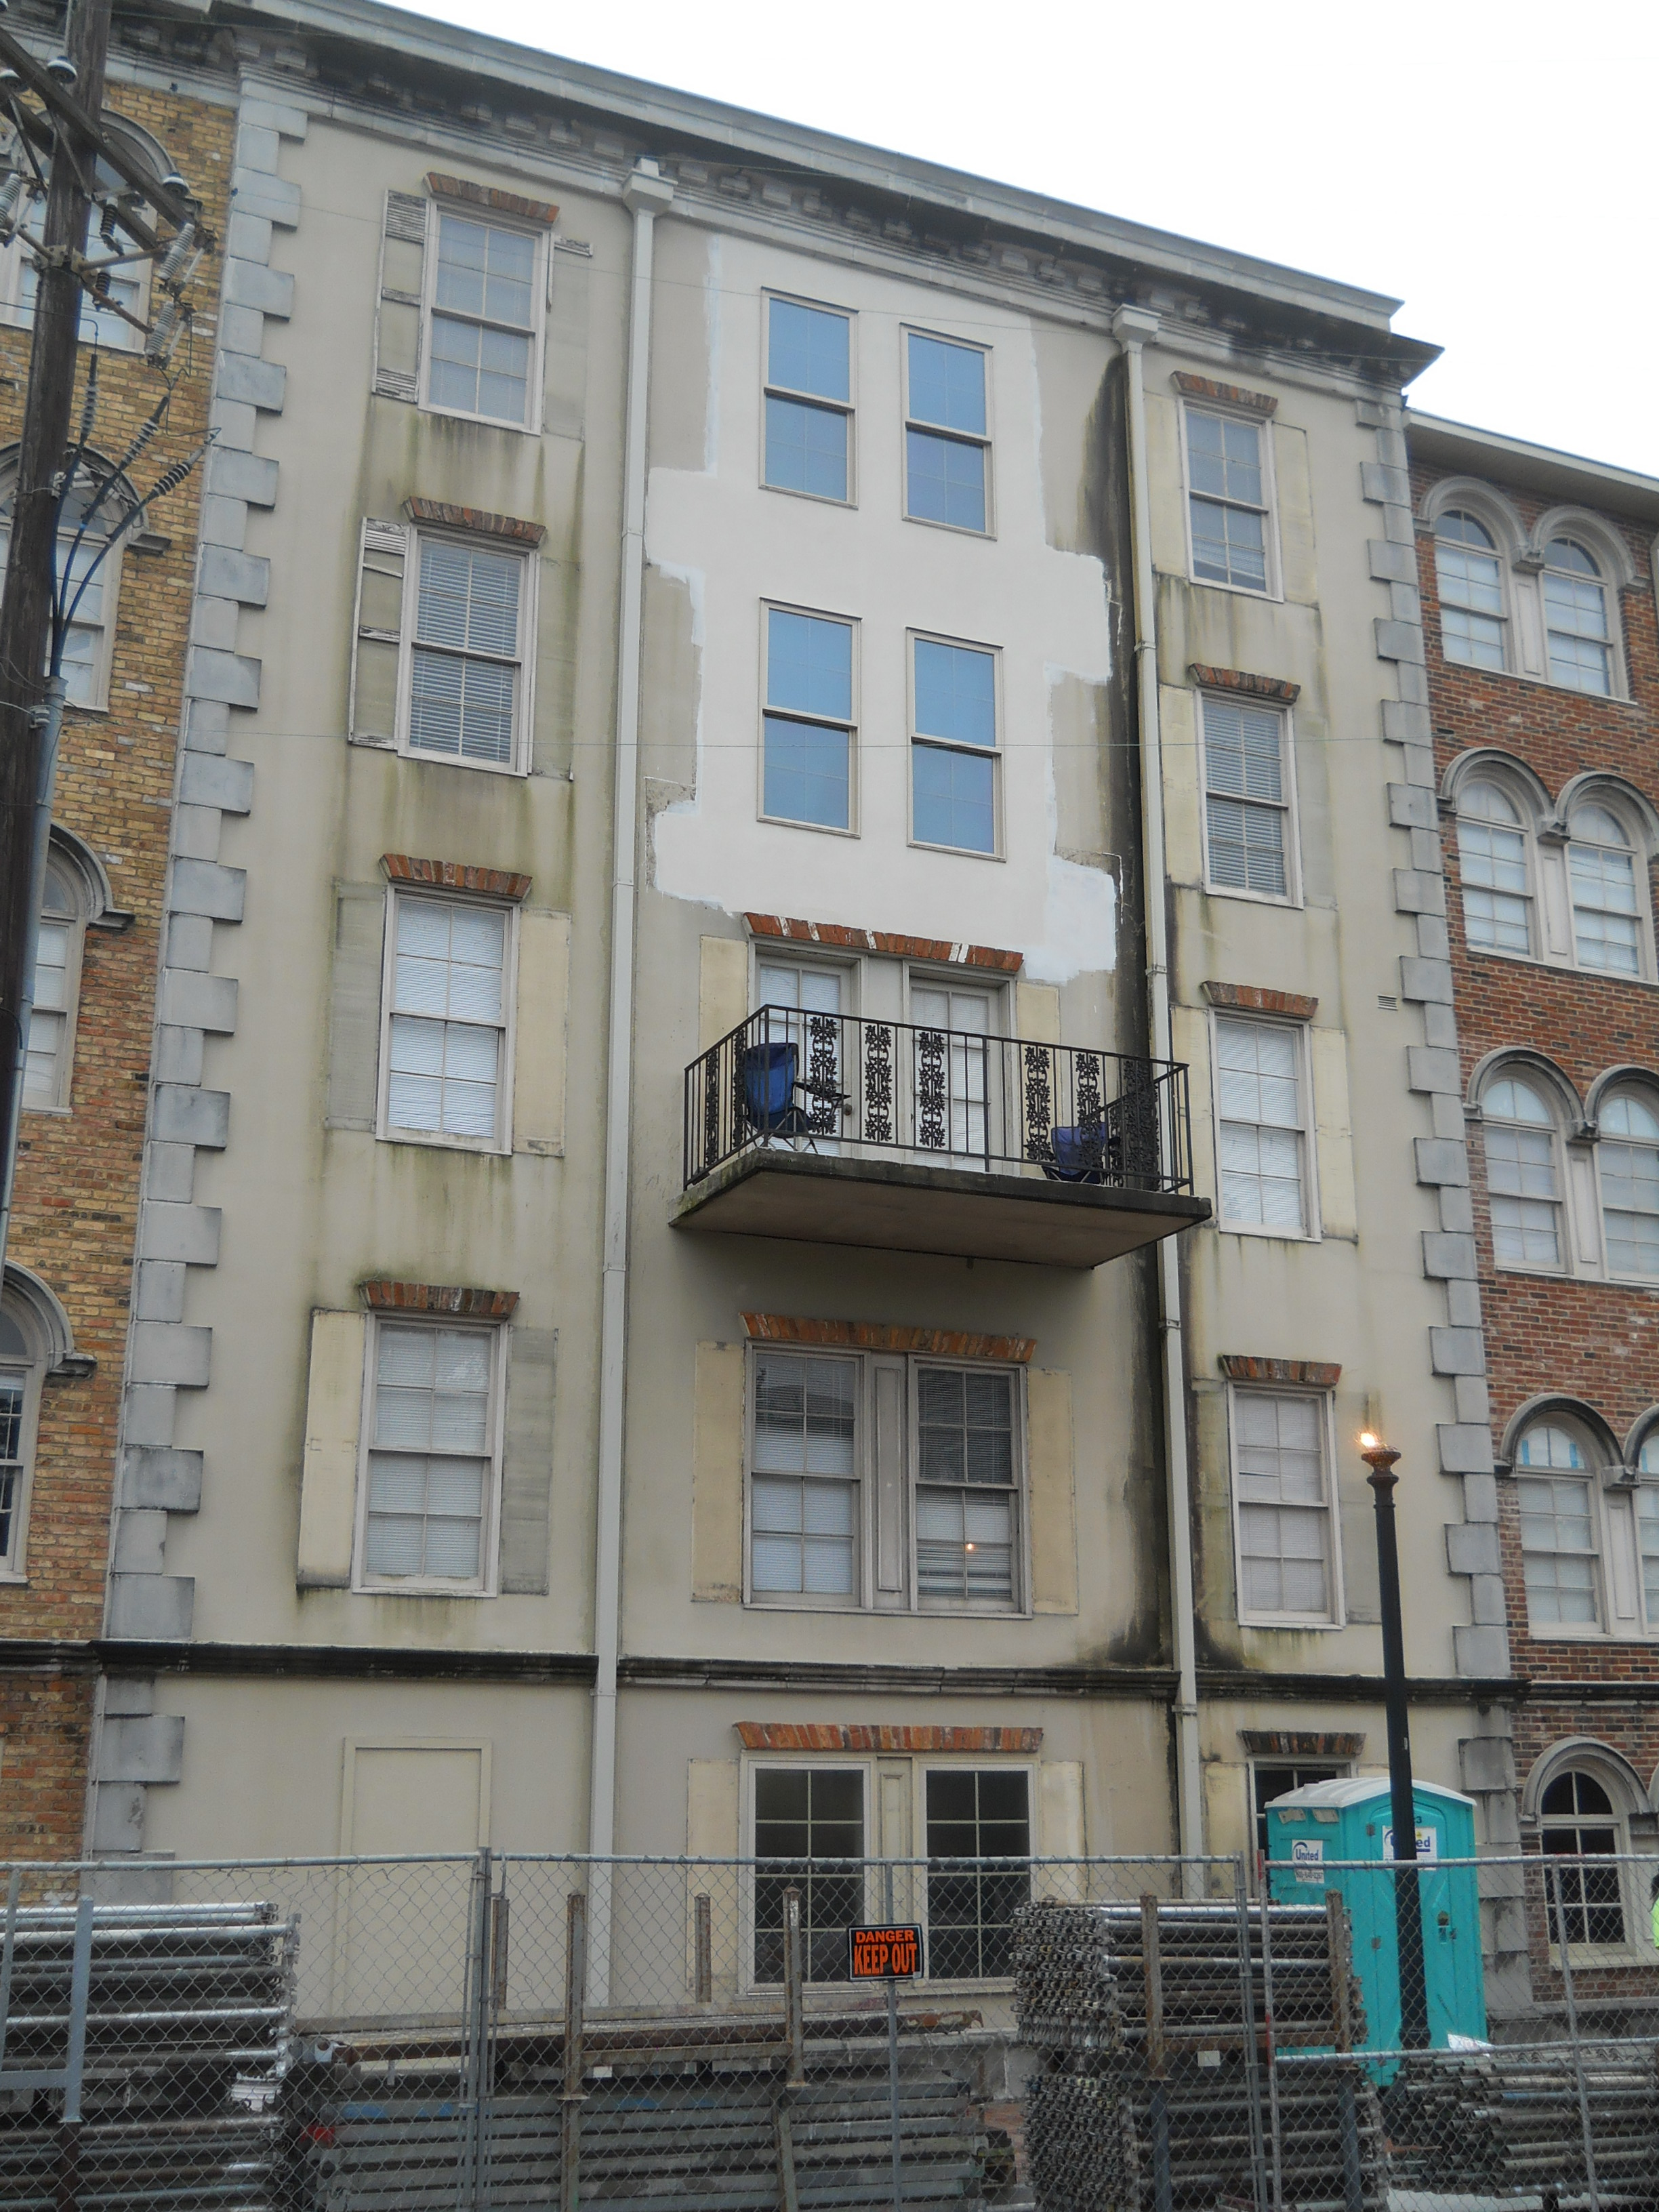 Removed balconies with repaired stucco and replacement windows before painting